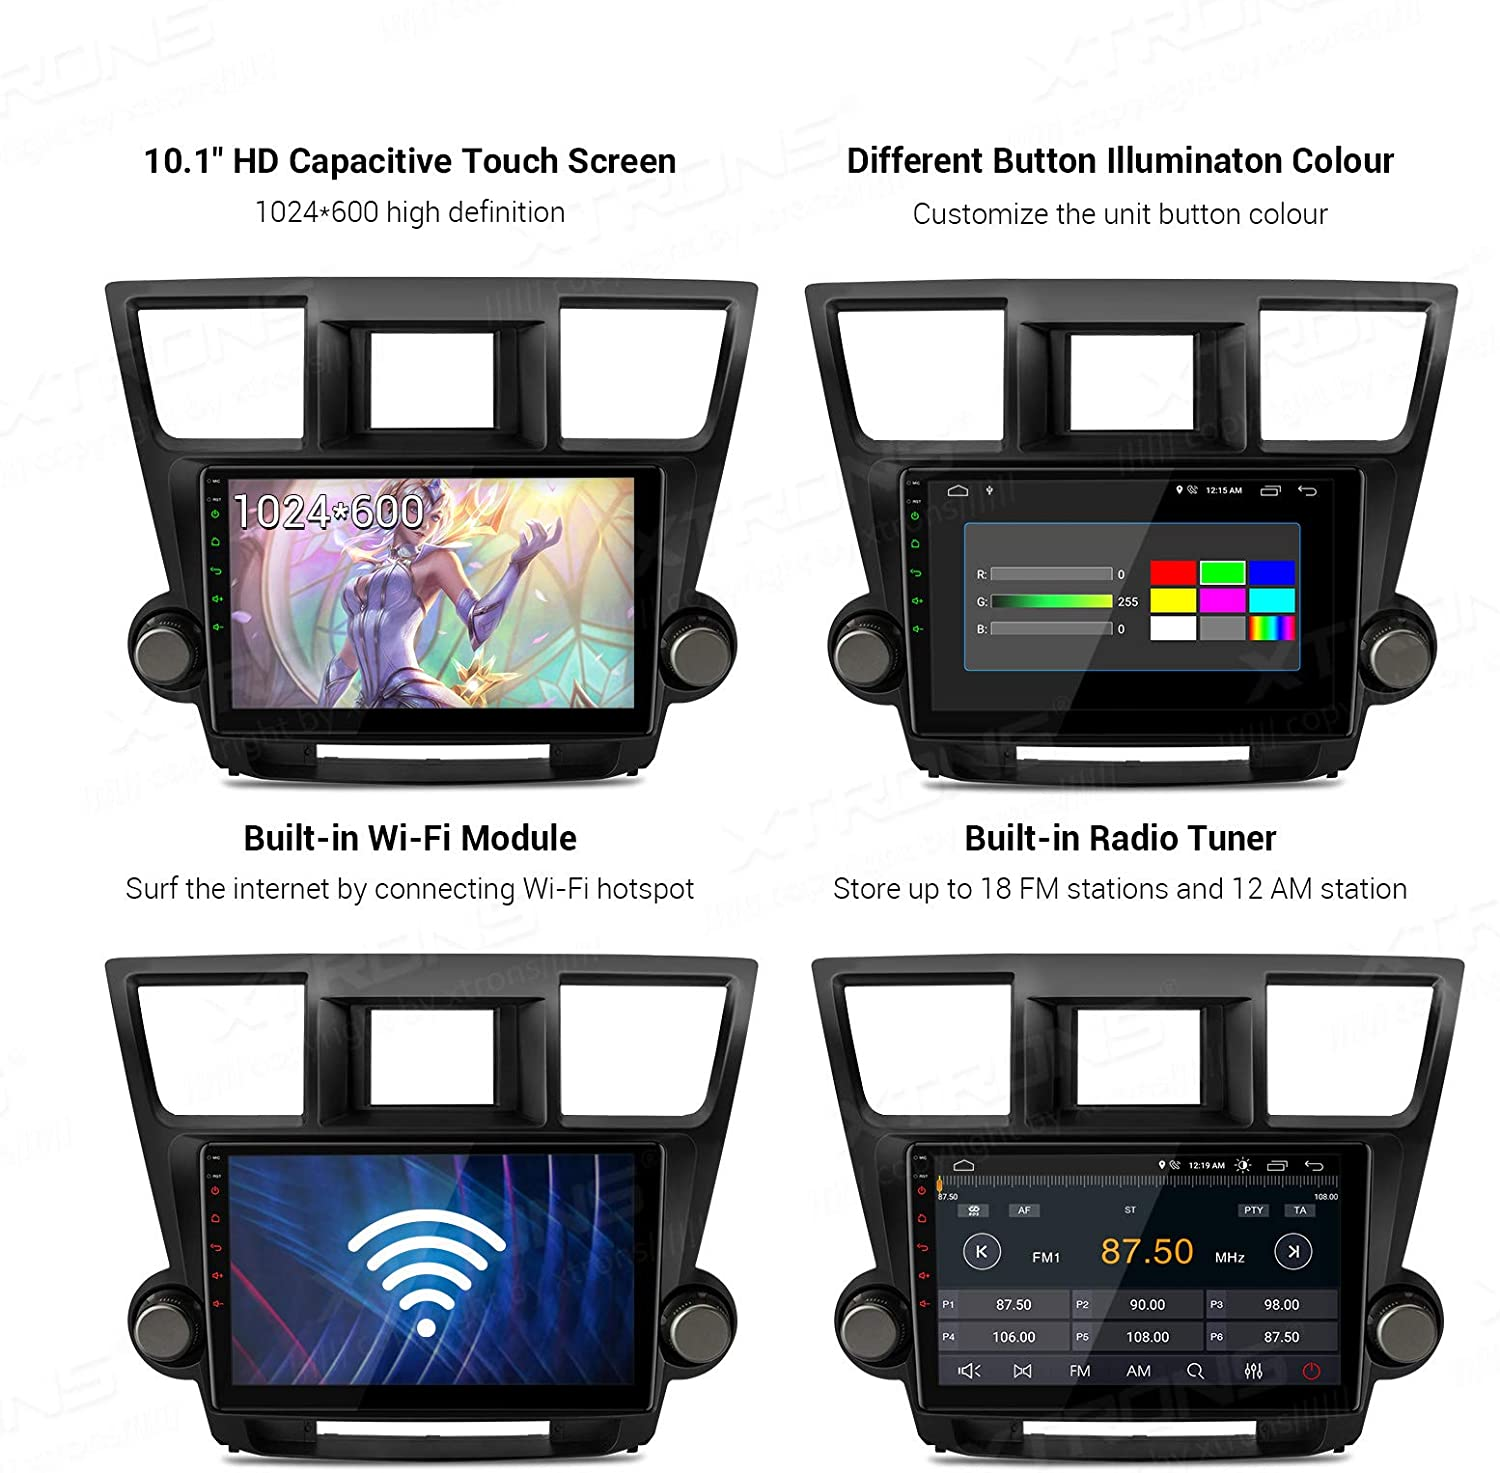 XTRONS Android 10.0 Car Stereo Radio Player 10.1 Inch IPS Touch Screen GPS Navigation Built-in DSP Bluetooth Head Unit Supports Full RCA Output Backup Camera WiFi OBD2 DVR TPMS for Toyota Highlander